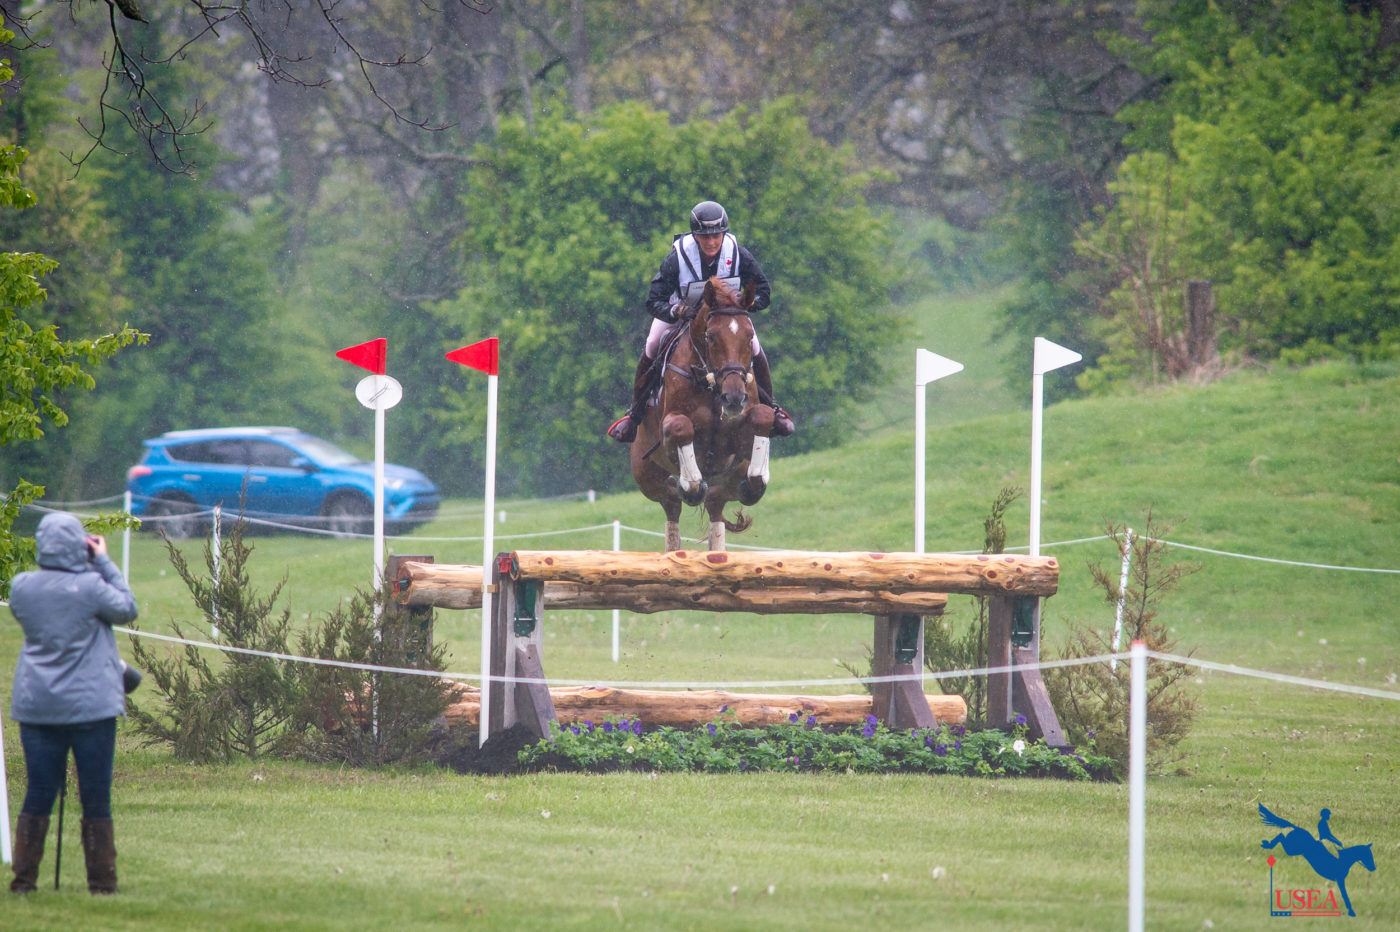 CCI4*-S - 3rd - Colleen Loach and Vermont. Erin Gilmore Photo.